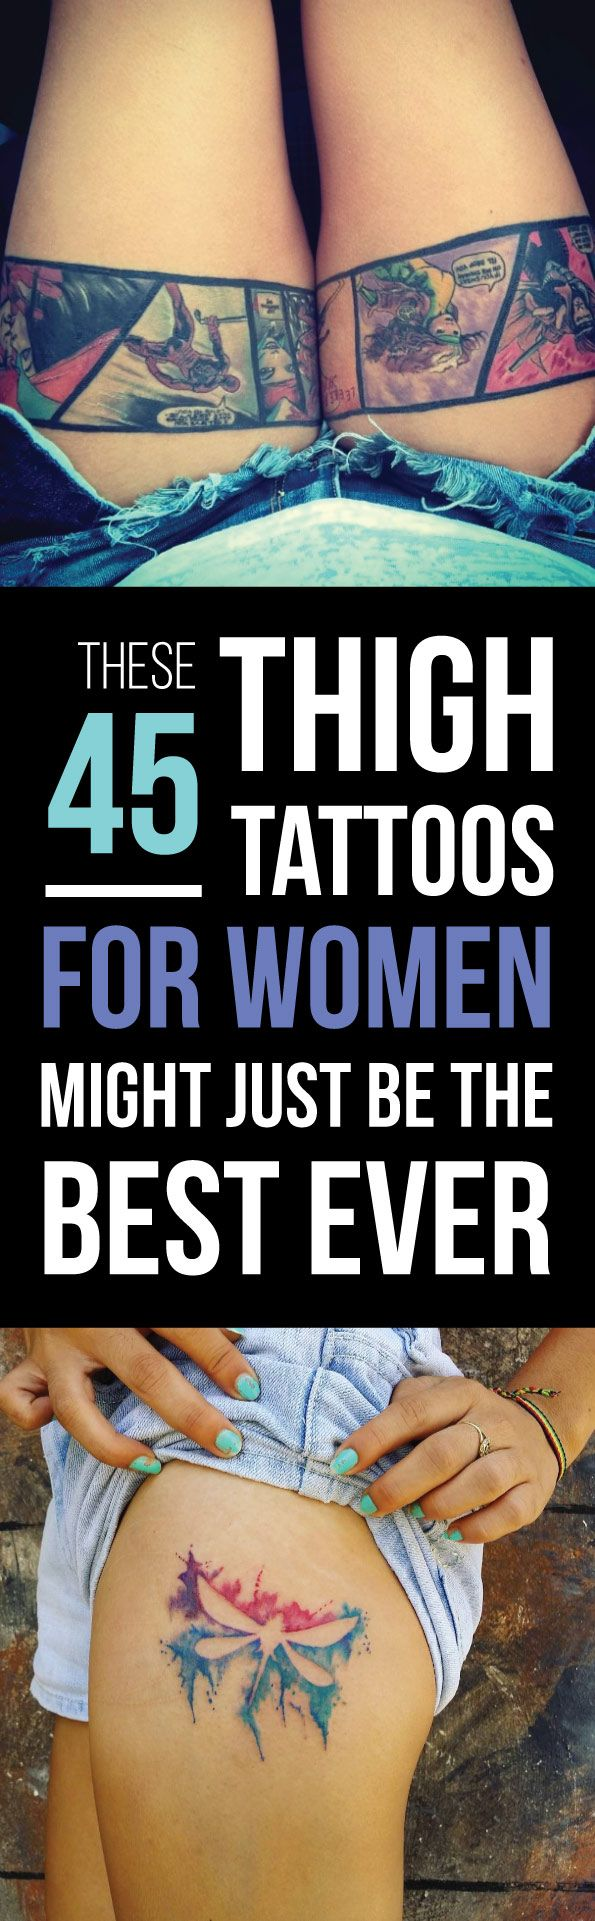 The 45 Best Thigh Tattoos You'll Ever See | TattooBlend